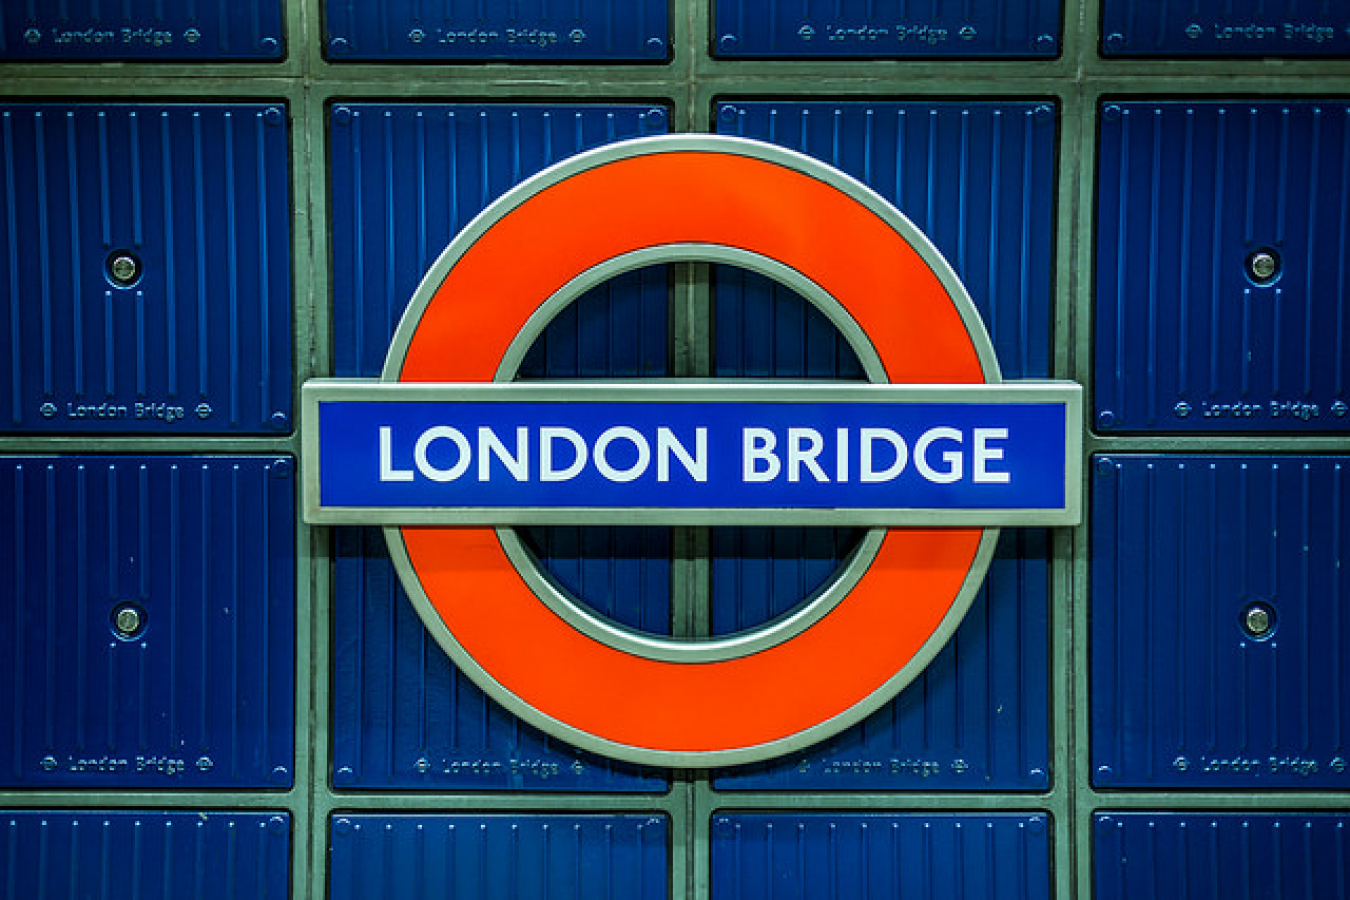 London Bridge Sign, London, UK